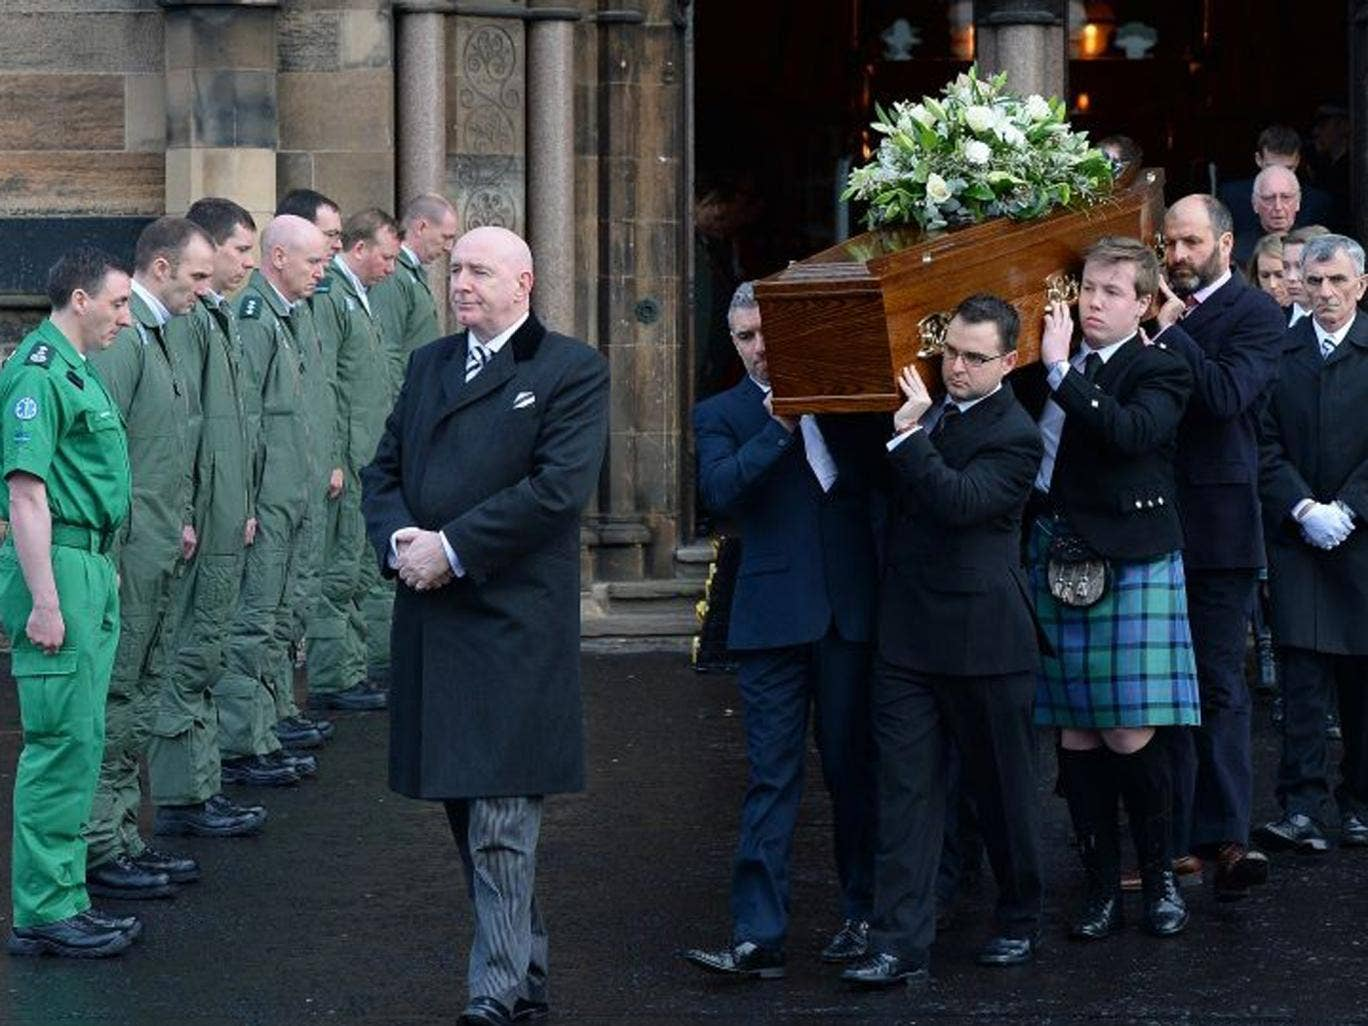 The body of David Traill is carried from the funeral service at the University of Glasgow's Bute Hall